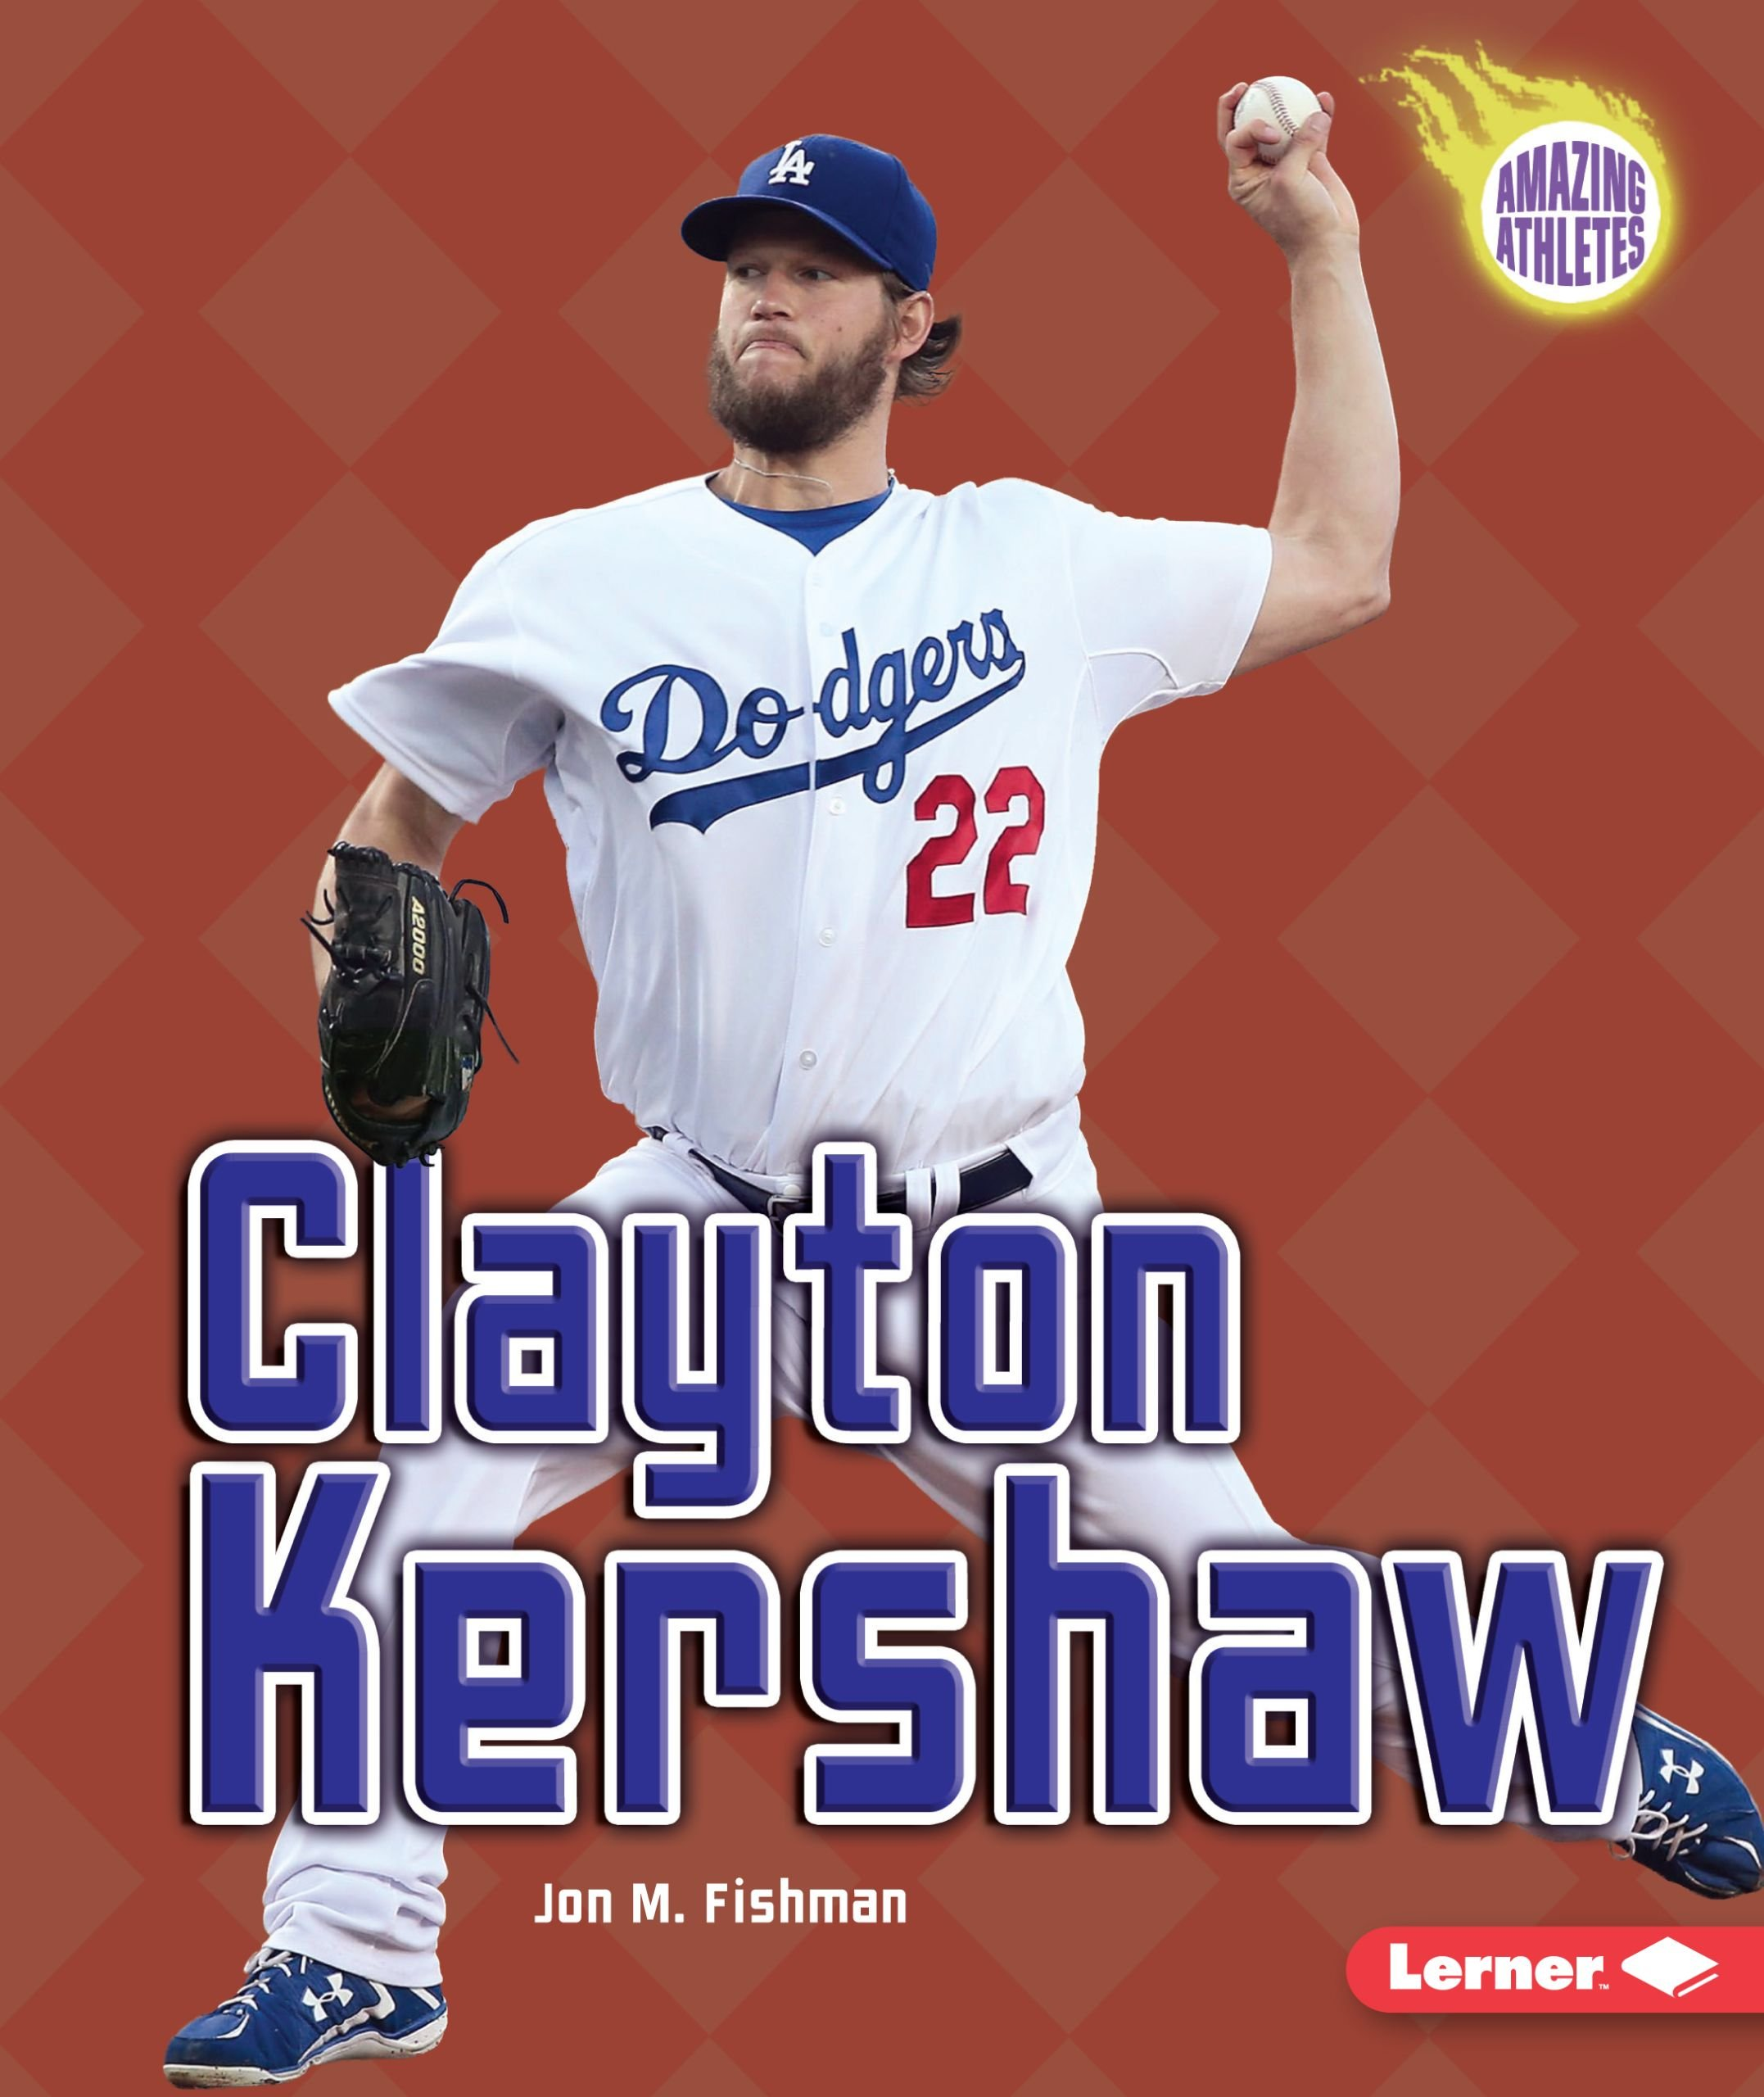 Clayton Kershaw Amazing Athletes Fishman product image